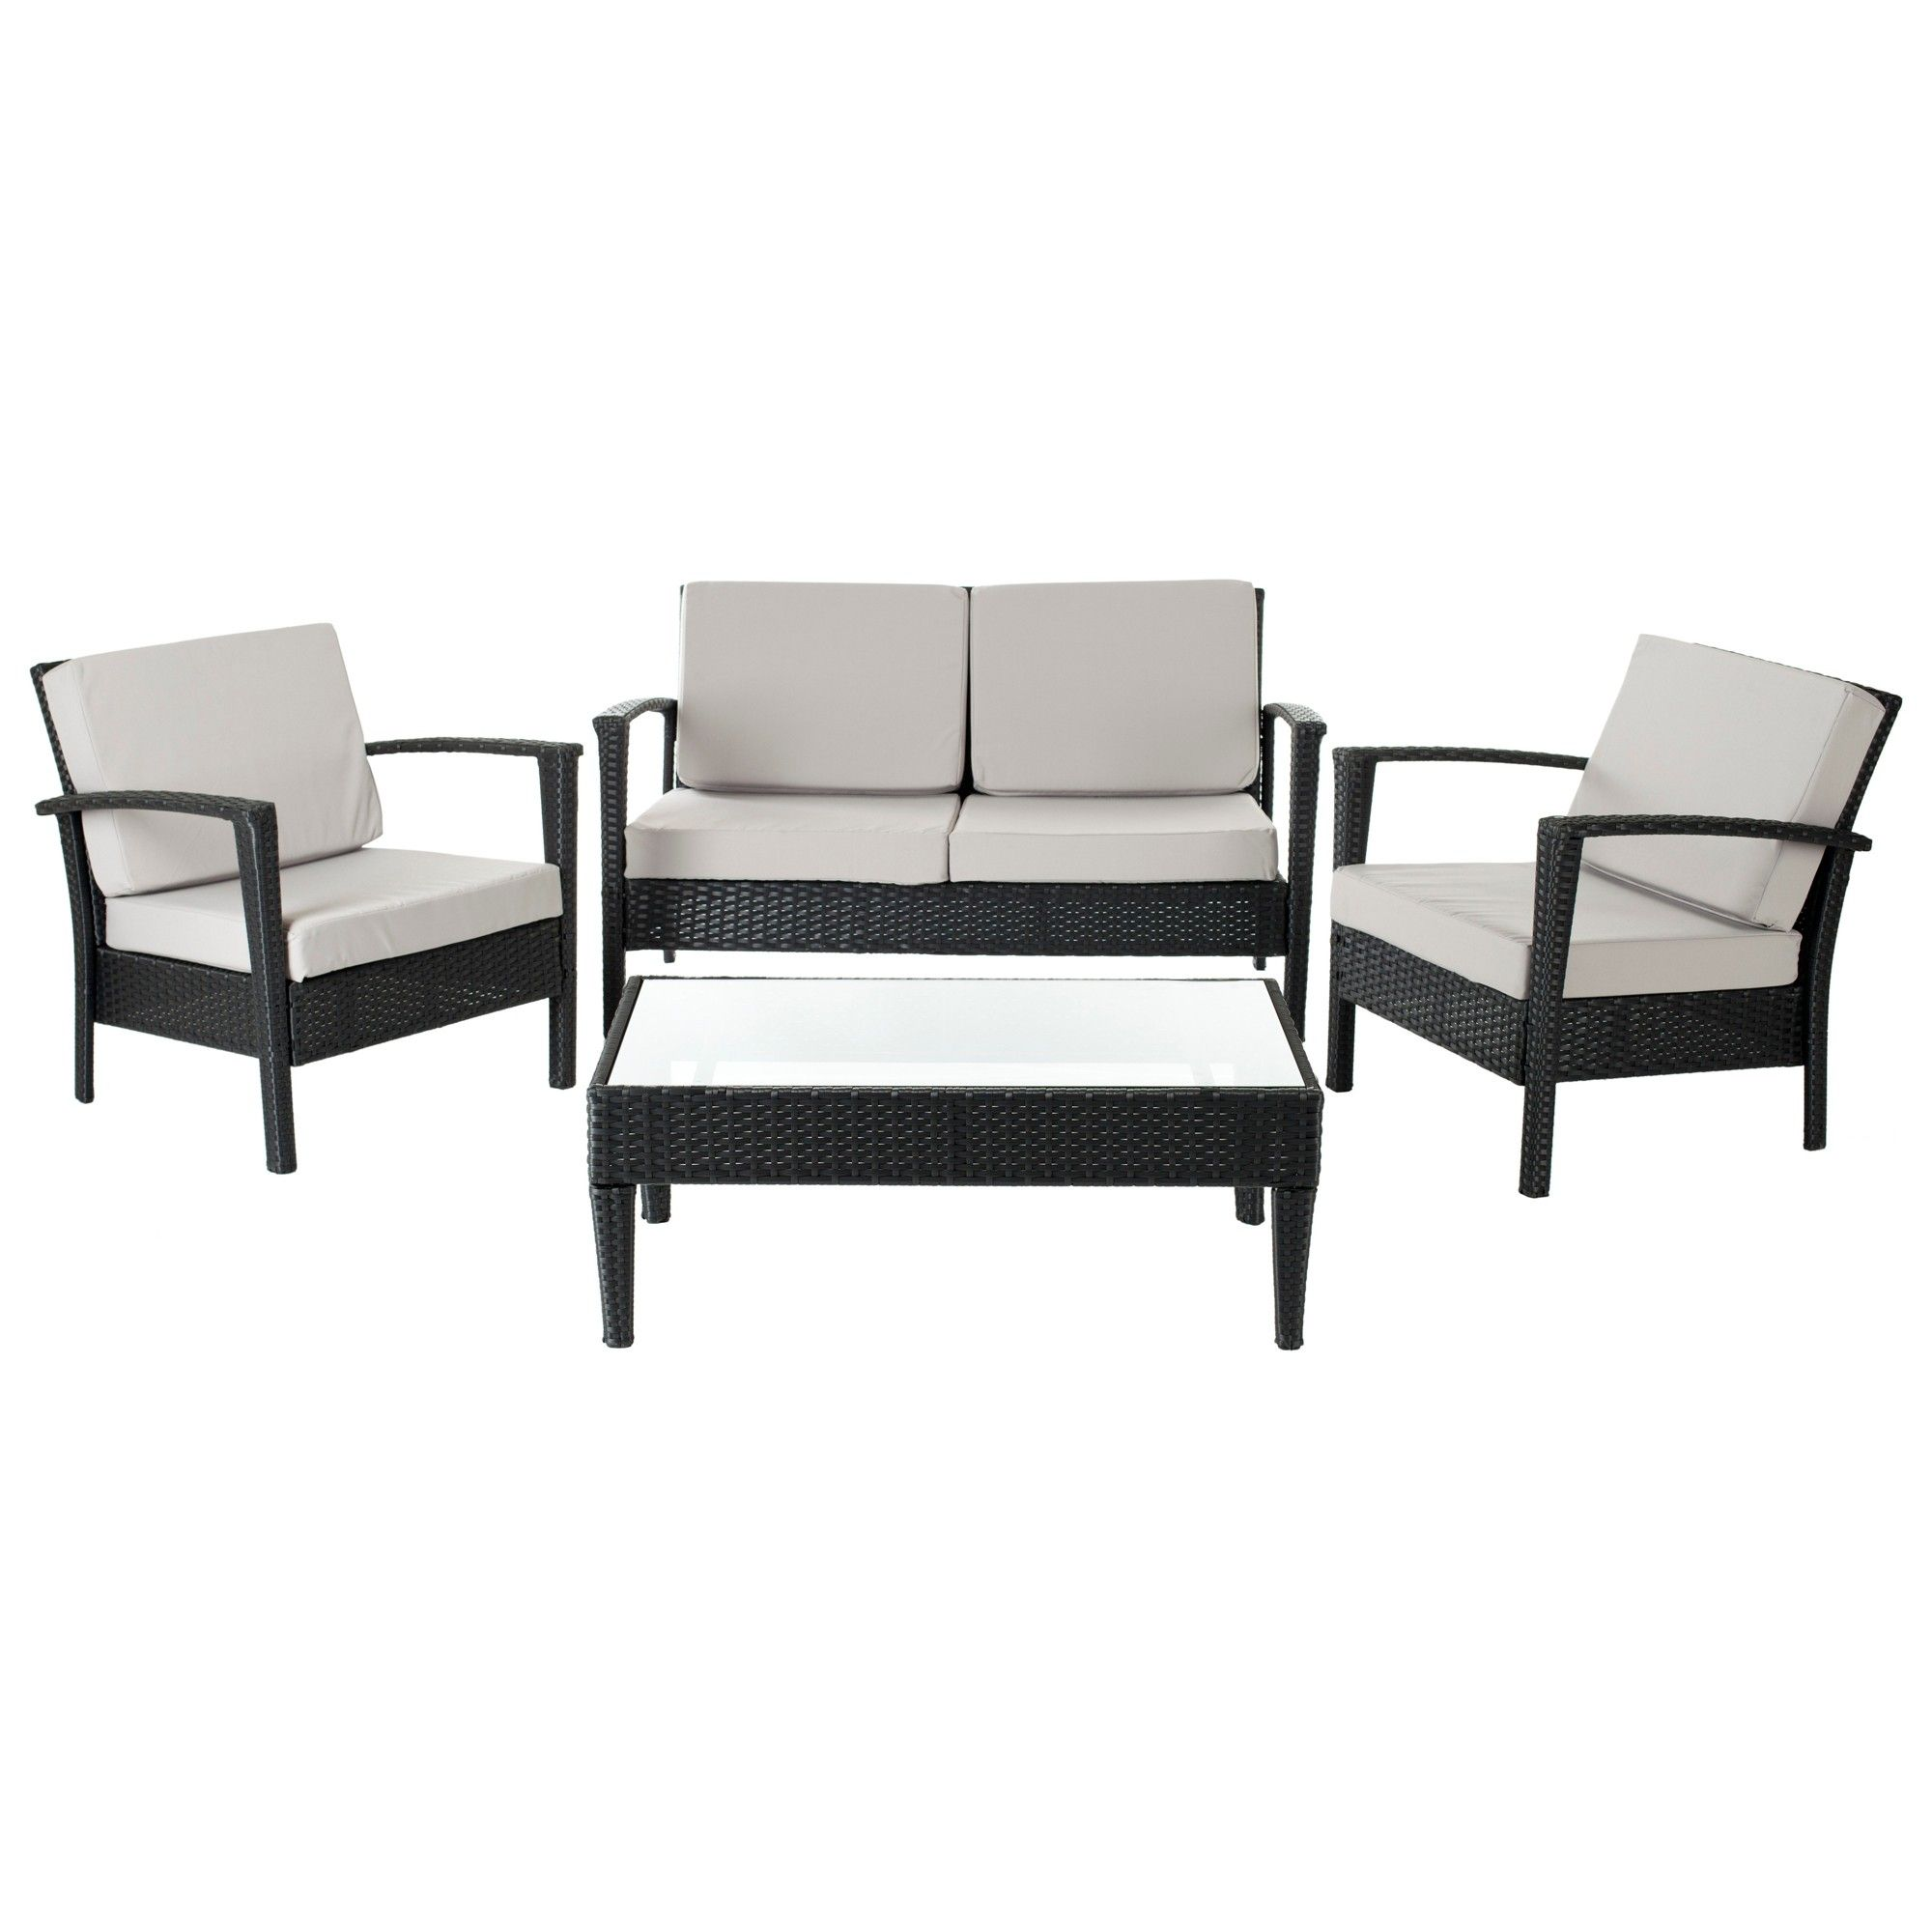 Küchendesign hong kong piscataway piece set  blackgray  safavieh in   products